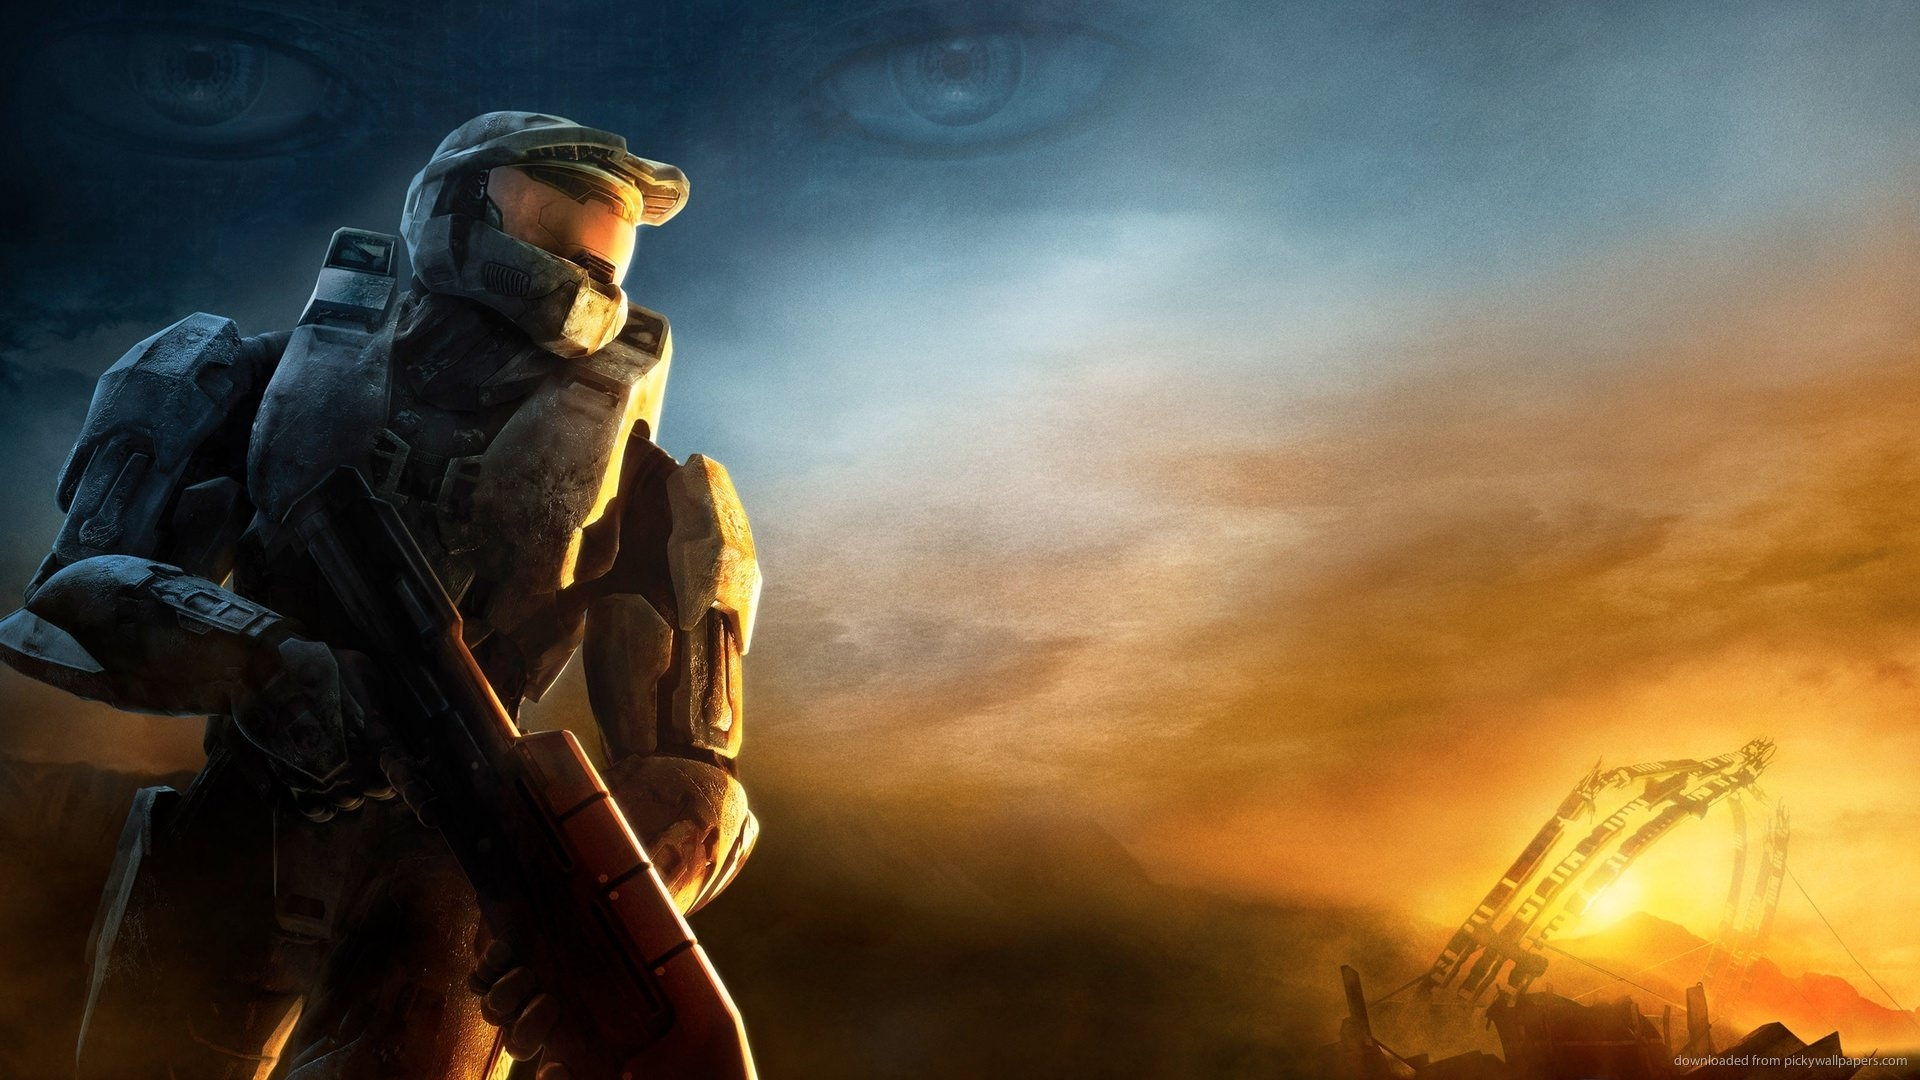 Halo 3 Wallpaper For Download